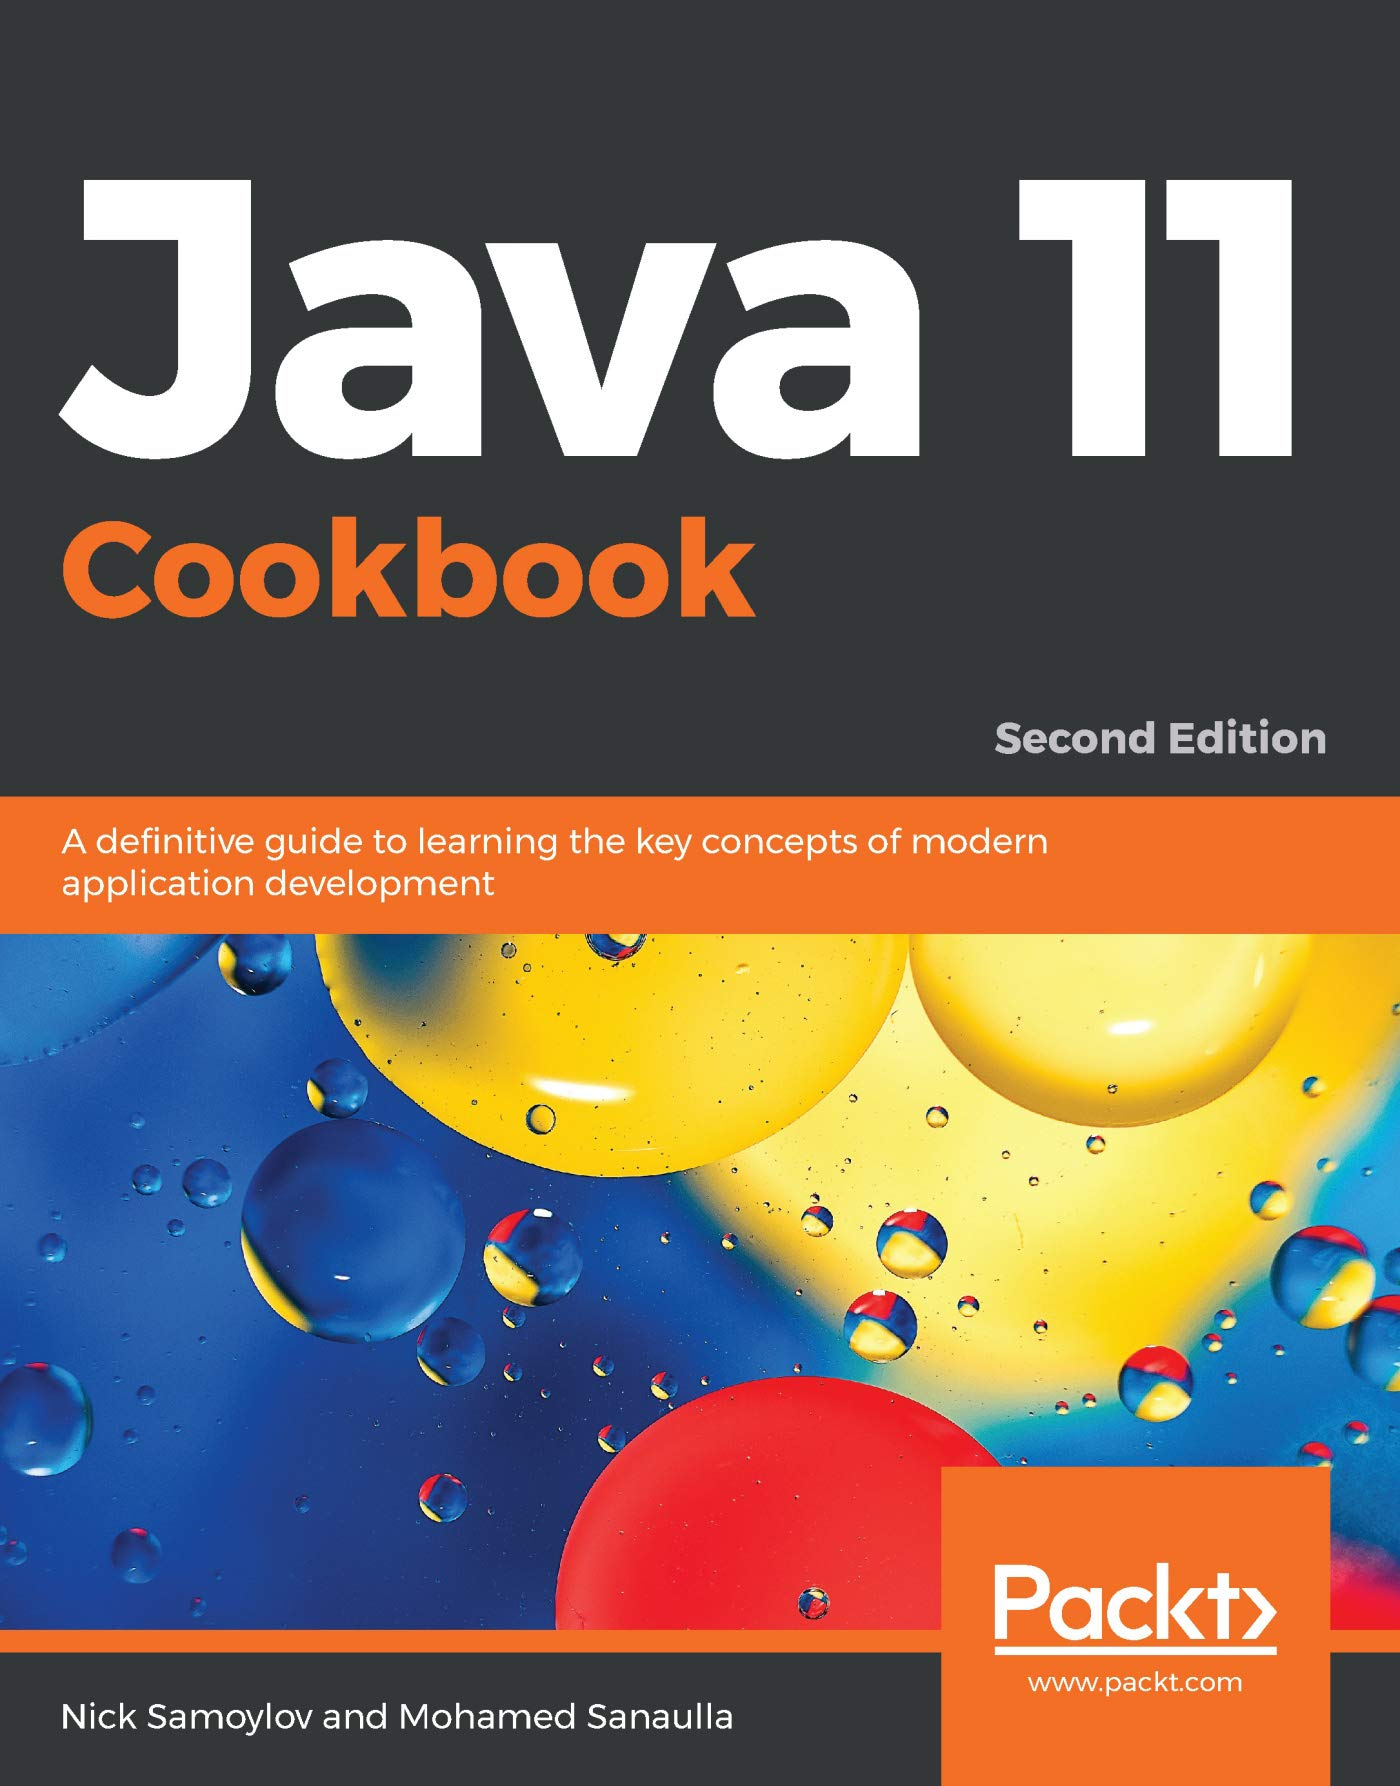 Java 11 Cookbook A Definitive Guide To Learning The Key Concepts Of Modern Application Development 2nd Edition 2 Samoylov Nick Sanaulla Mohamed Ebook Amazon Com